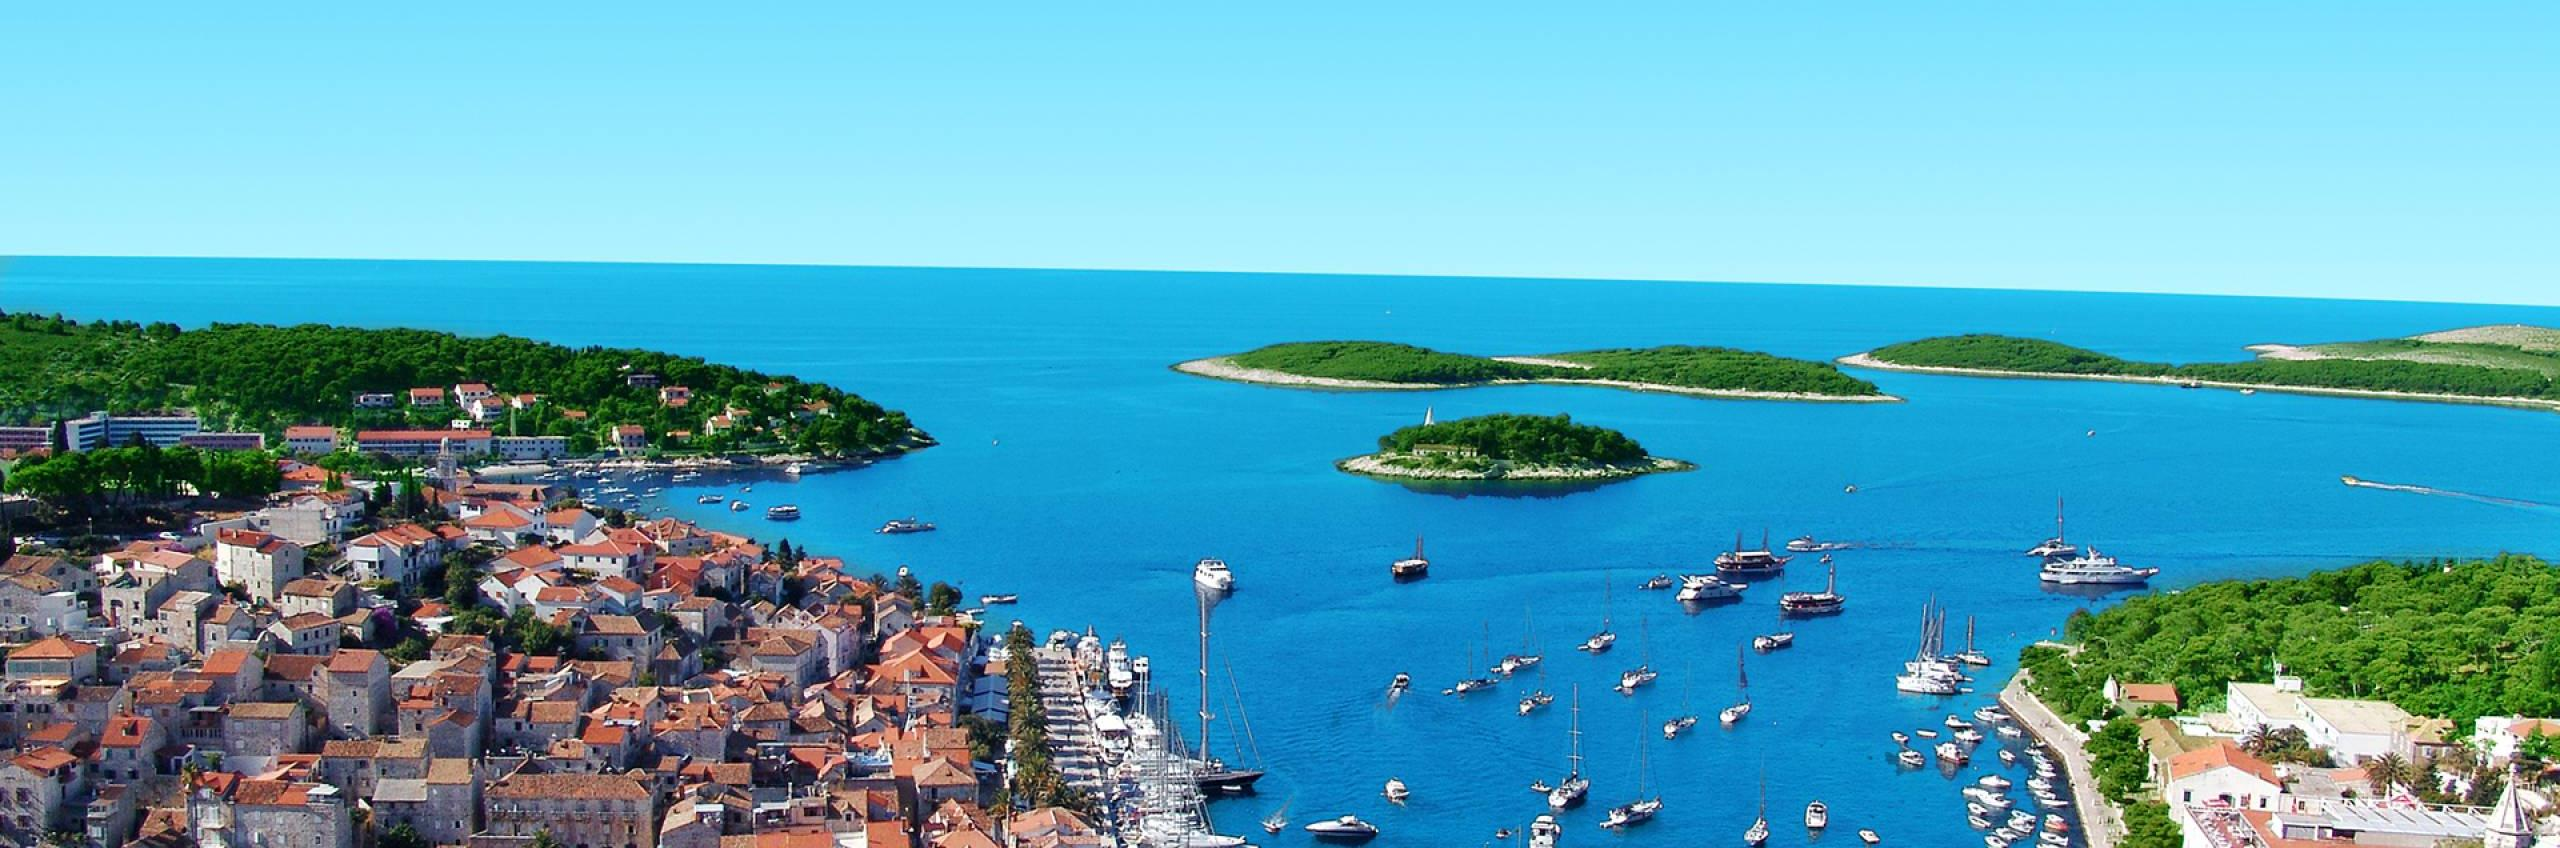 Croatia: 1185 islands and islets